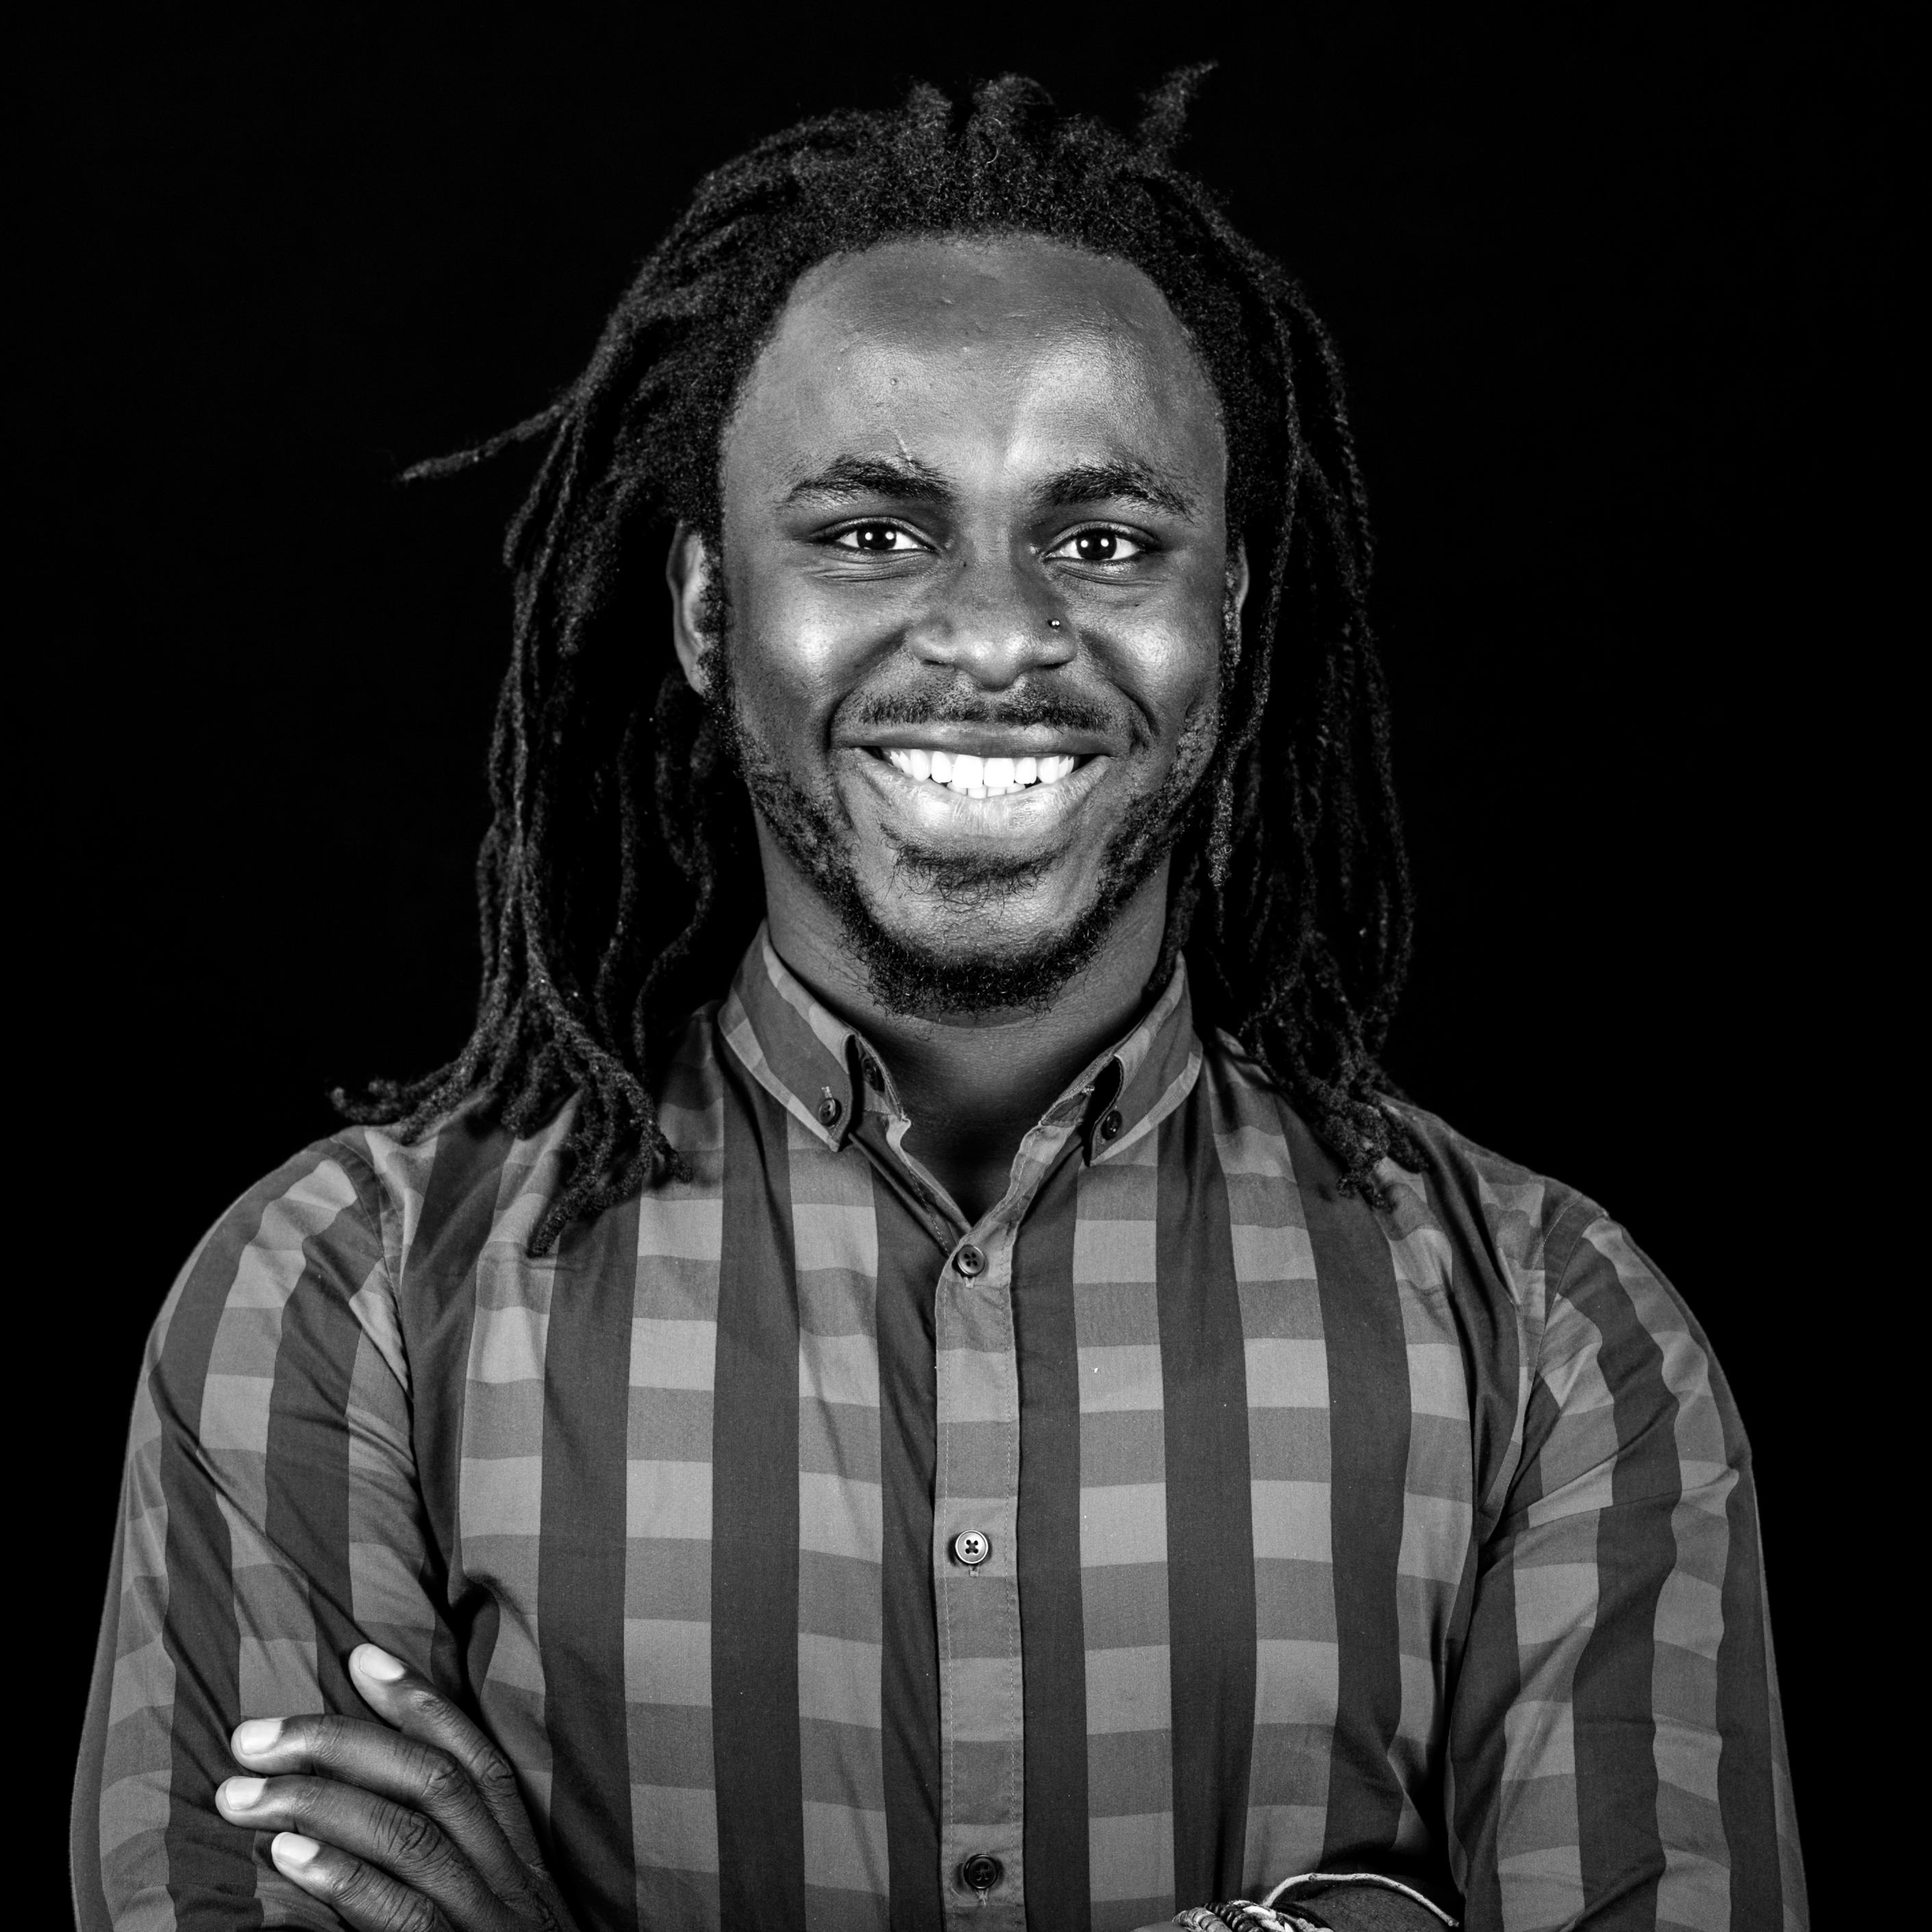 Babajide Mayowa Moibi | that Baba that fell in love with software development. A proud Nigerian - straight outta Ibadan, Nigeria!